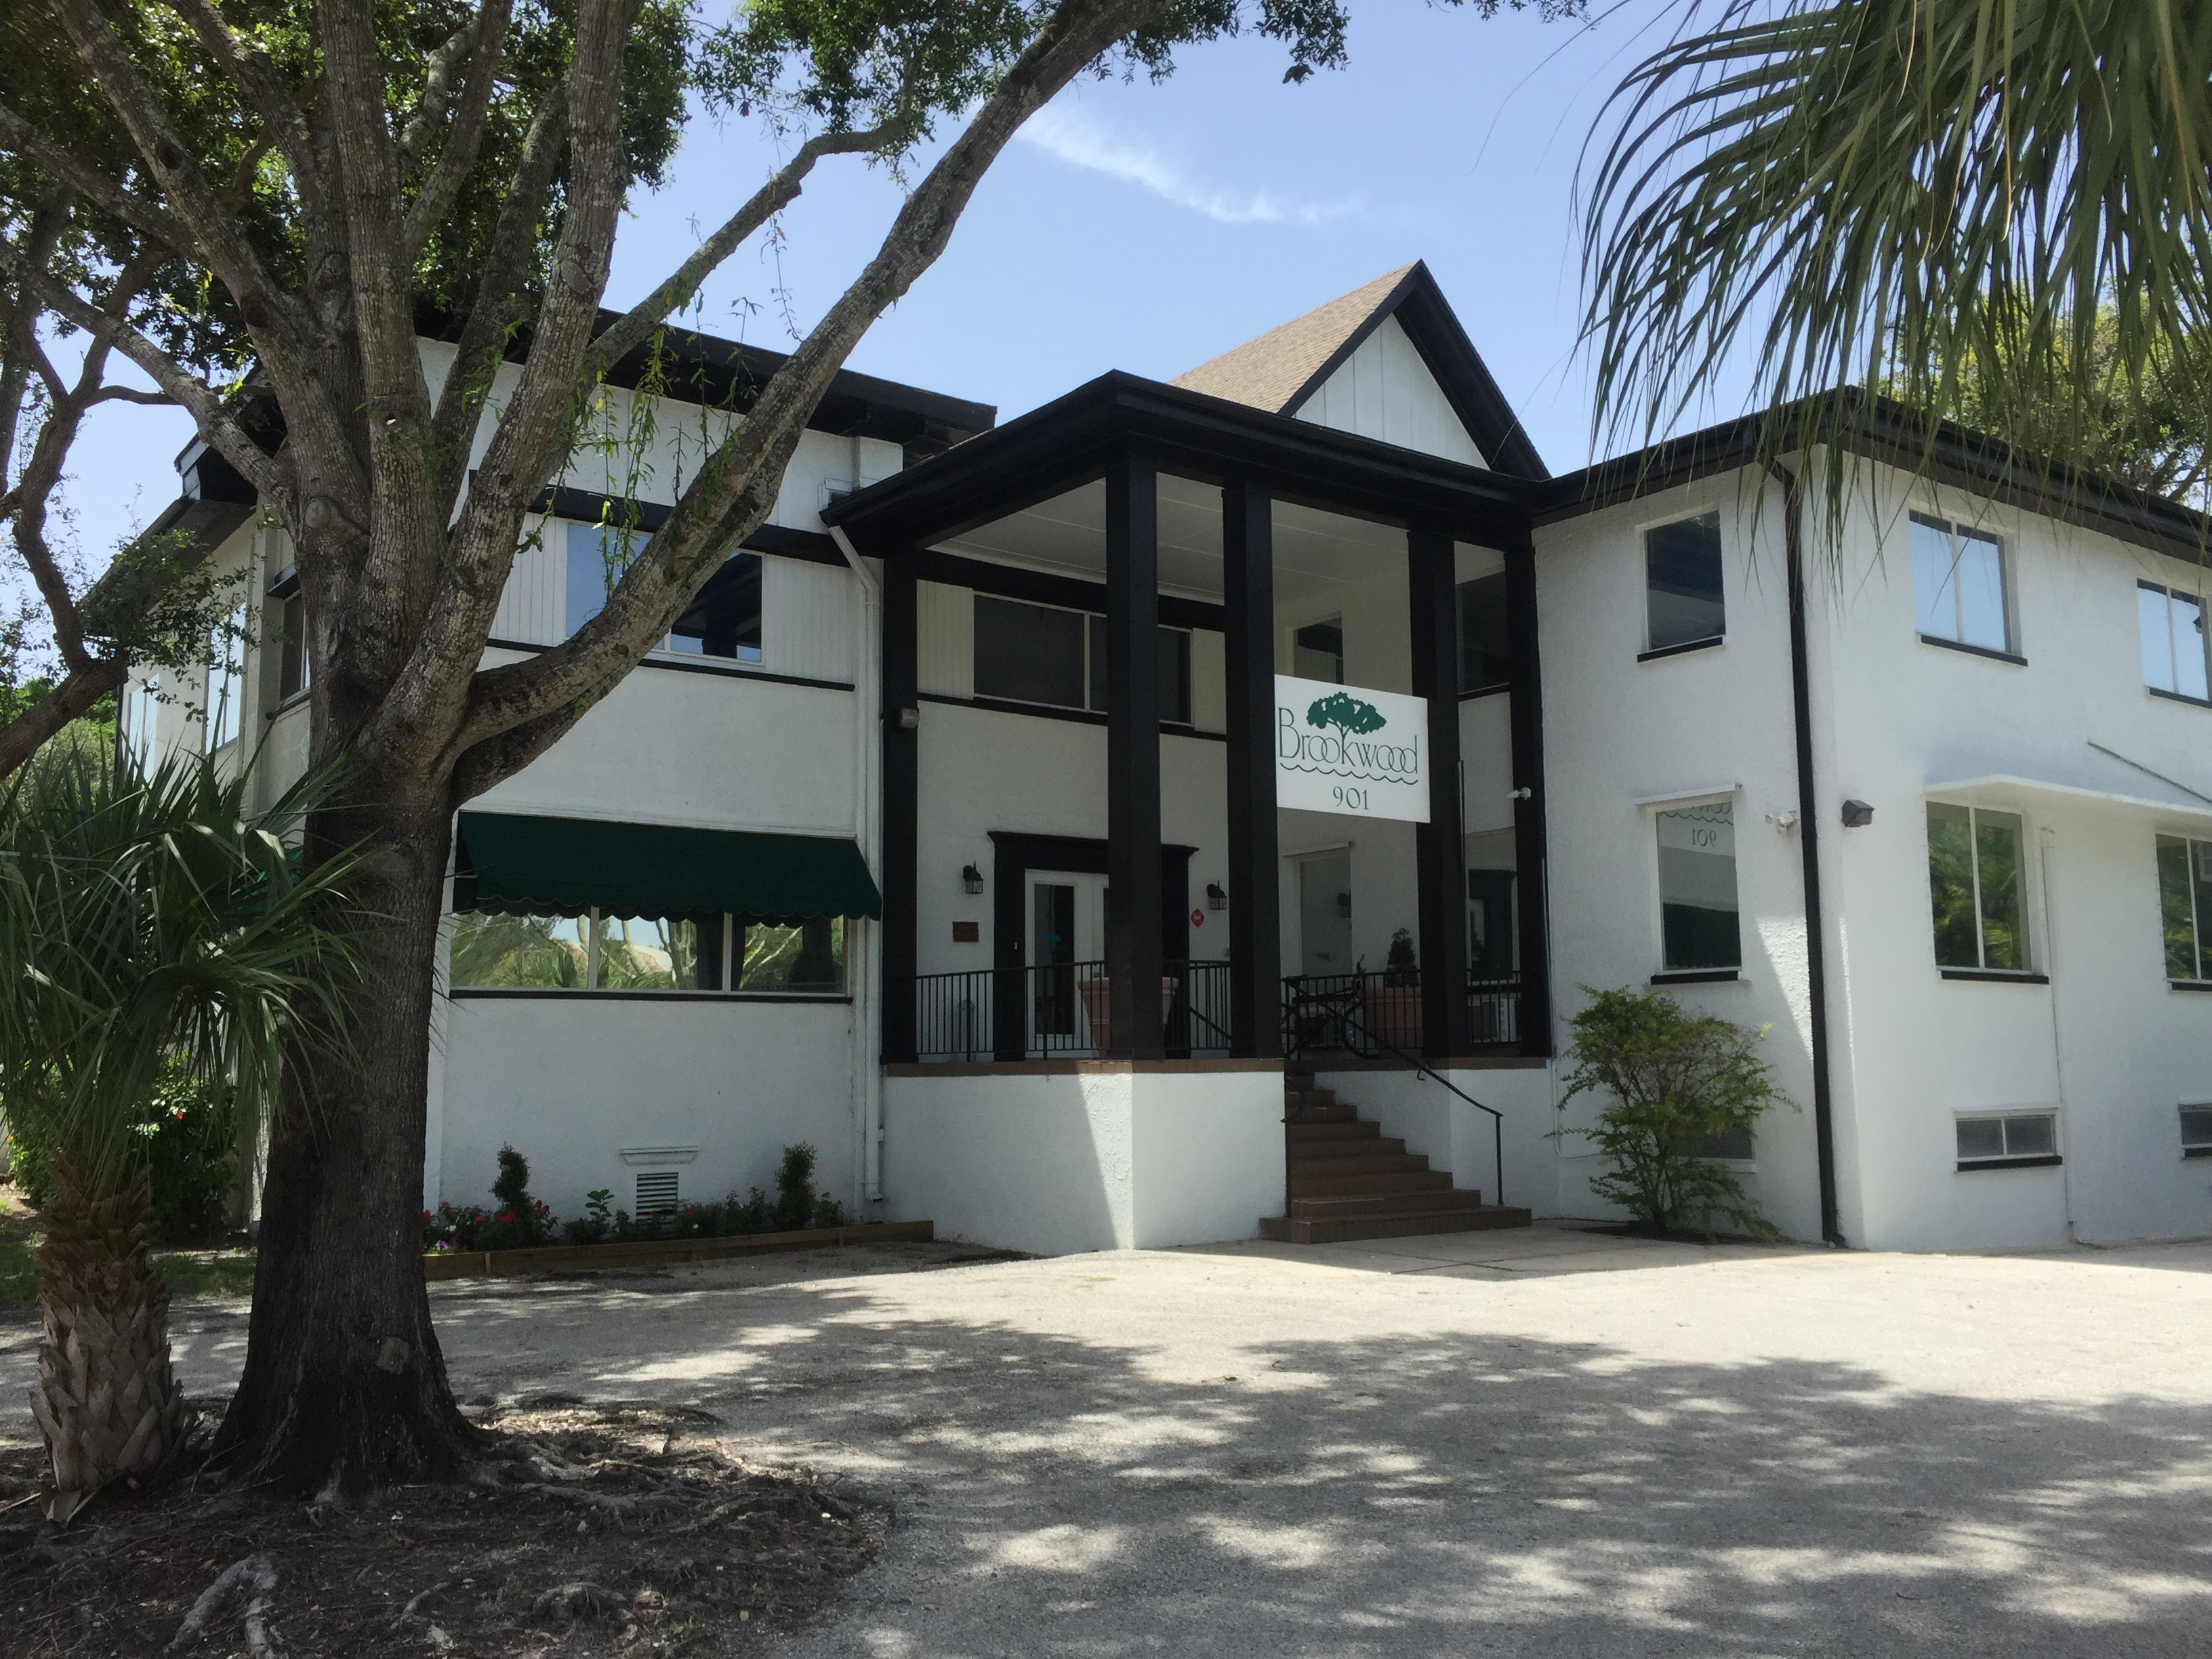 brookwood florida Get pricing and read reviews for signature healthcare of brookwood gardens -  homestead, fl call (866) 396-3202 for more information.